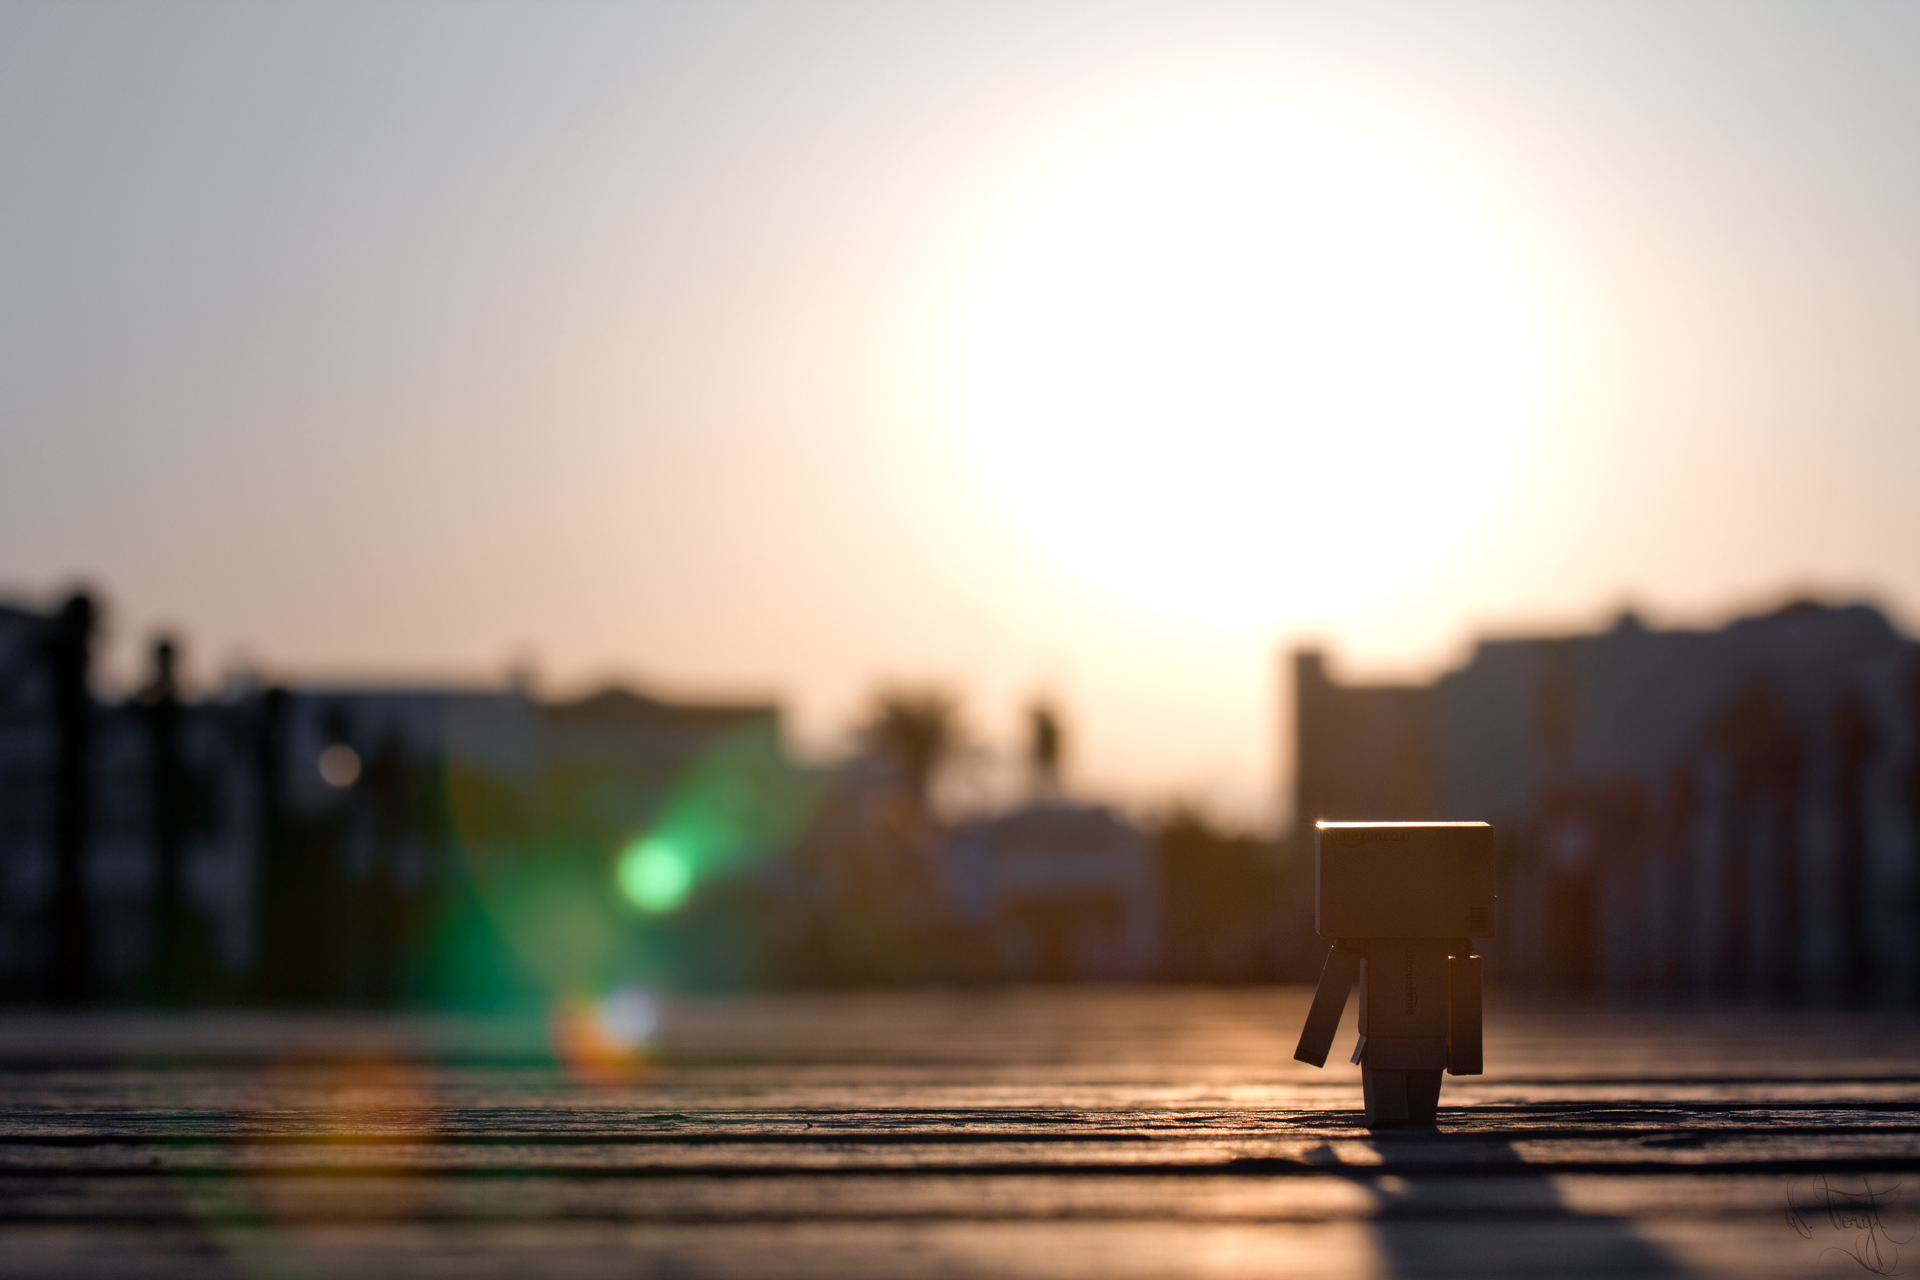 Danbo Takes A Walk HD Wallpaper